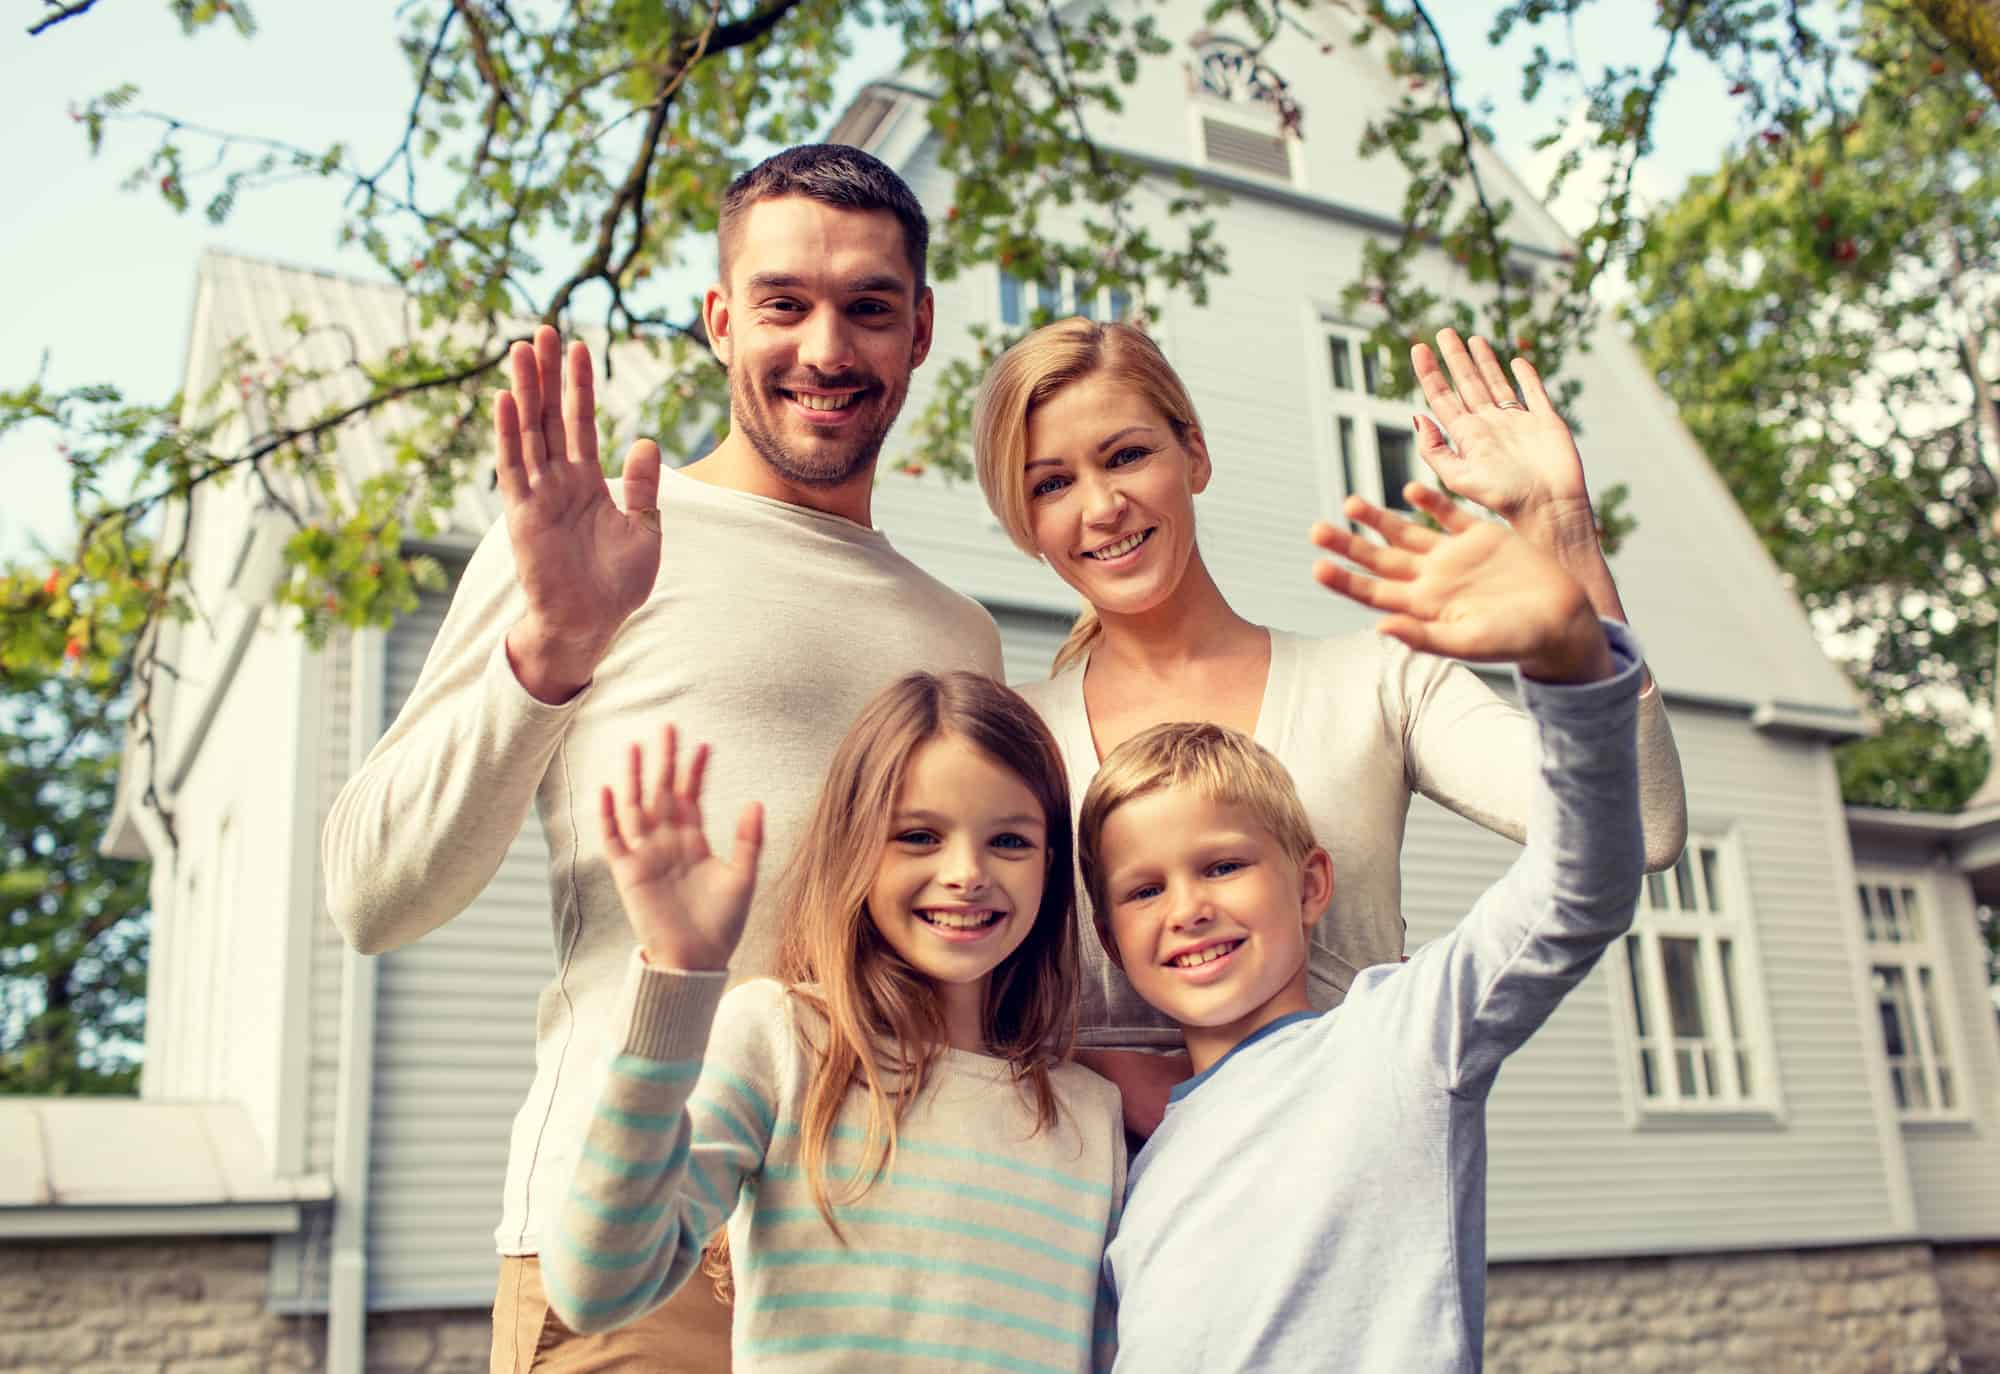 Happy Family Air conditioning tune-up patriot heat and air chattanooga tn